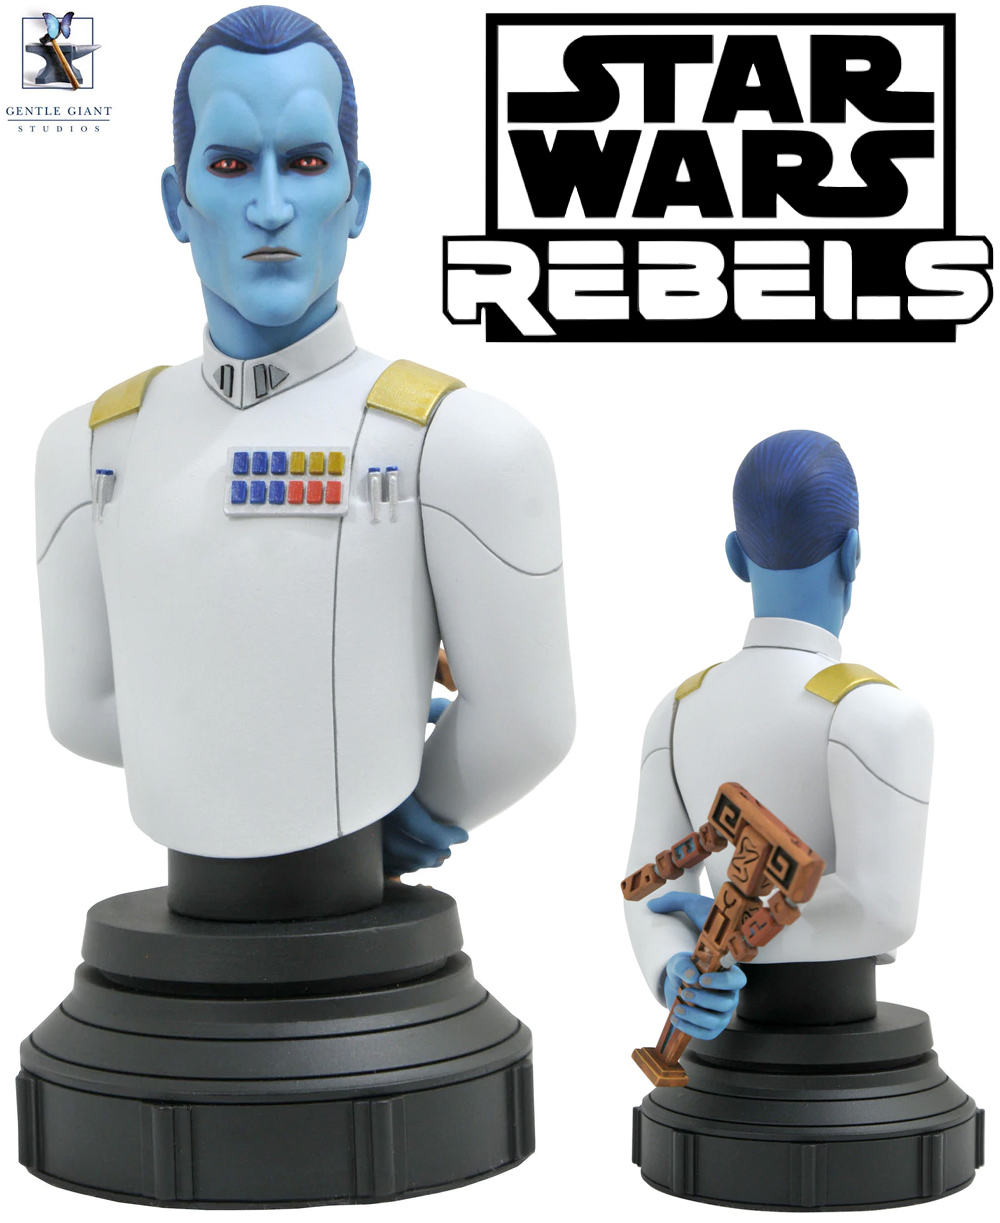 Grand Admiral Thrawn Star Wars Rebels Animated Mini Bust